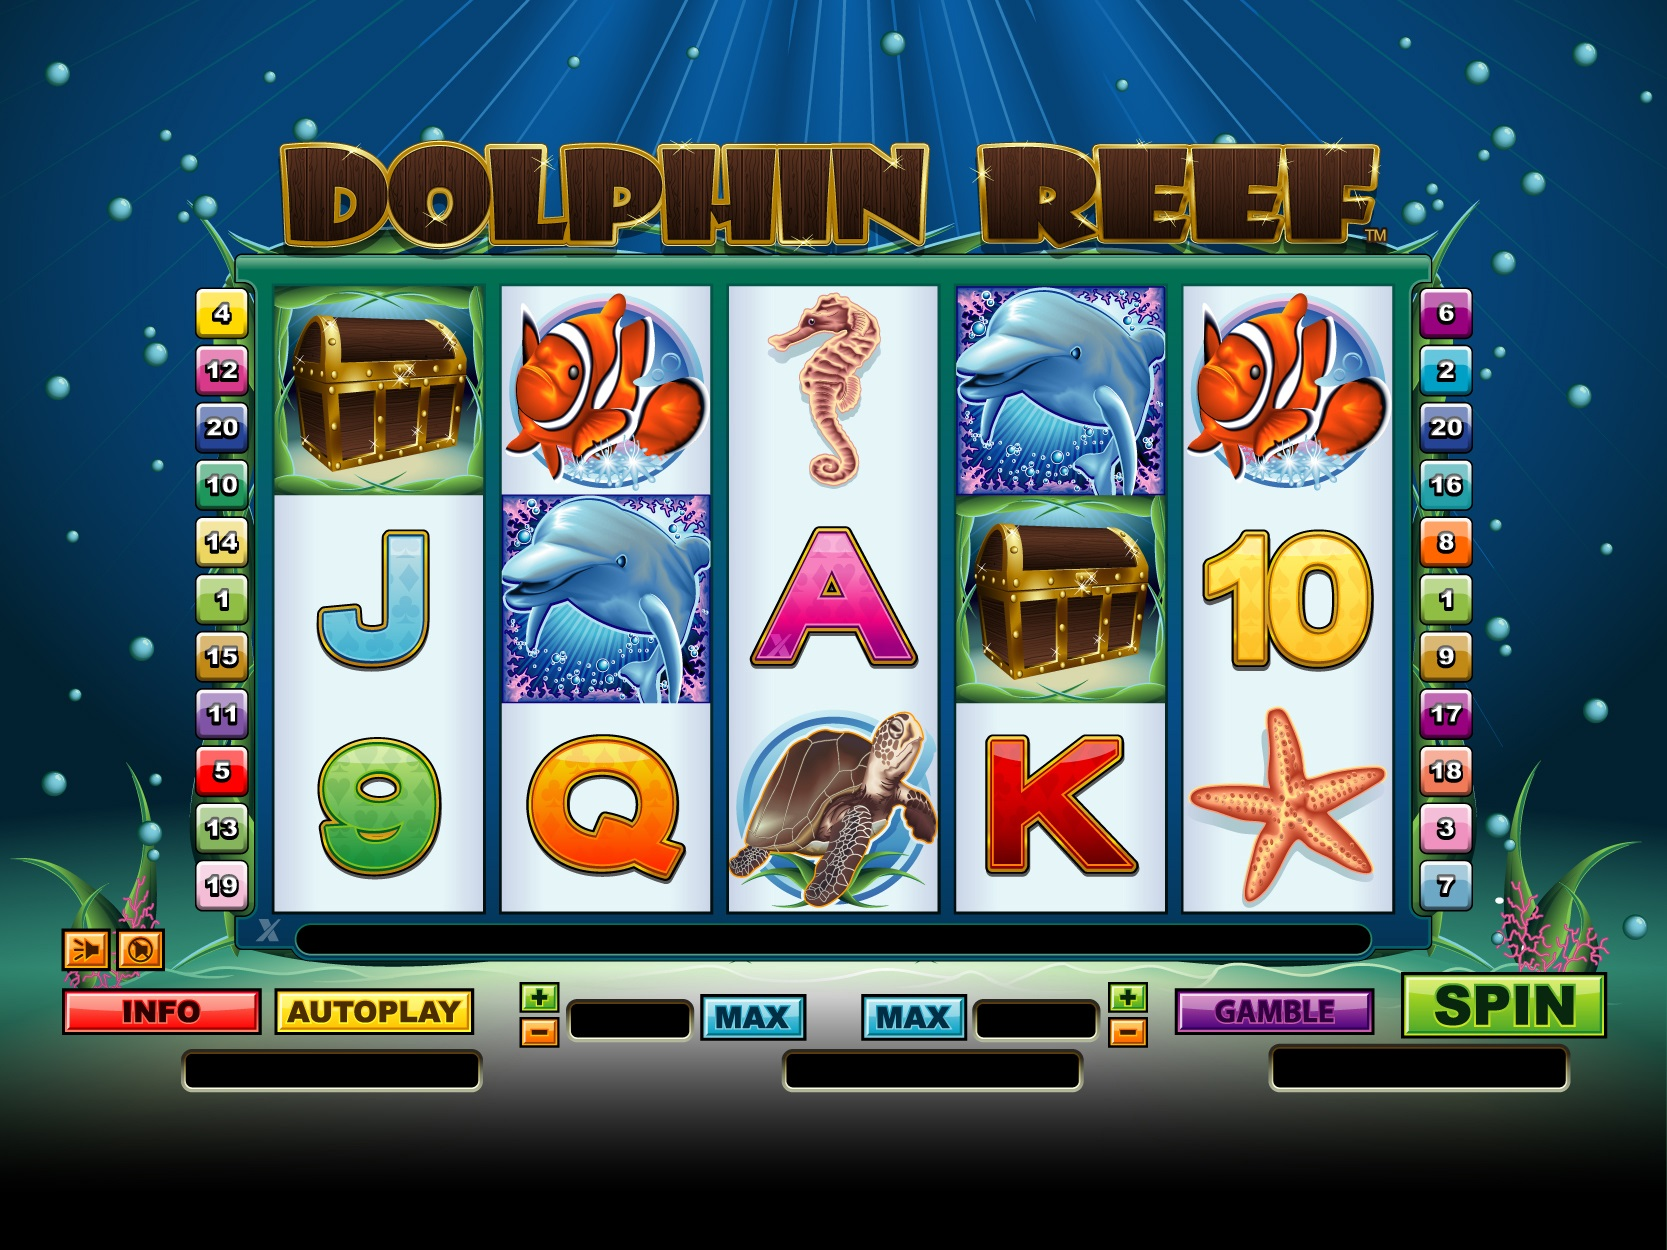 Dolphin Reef casino game